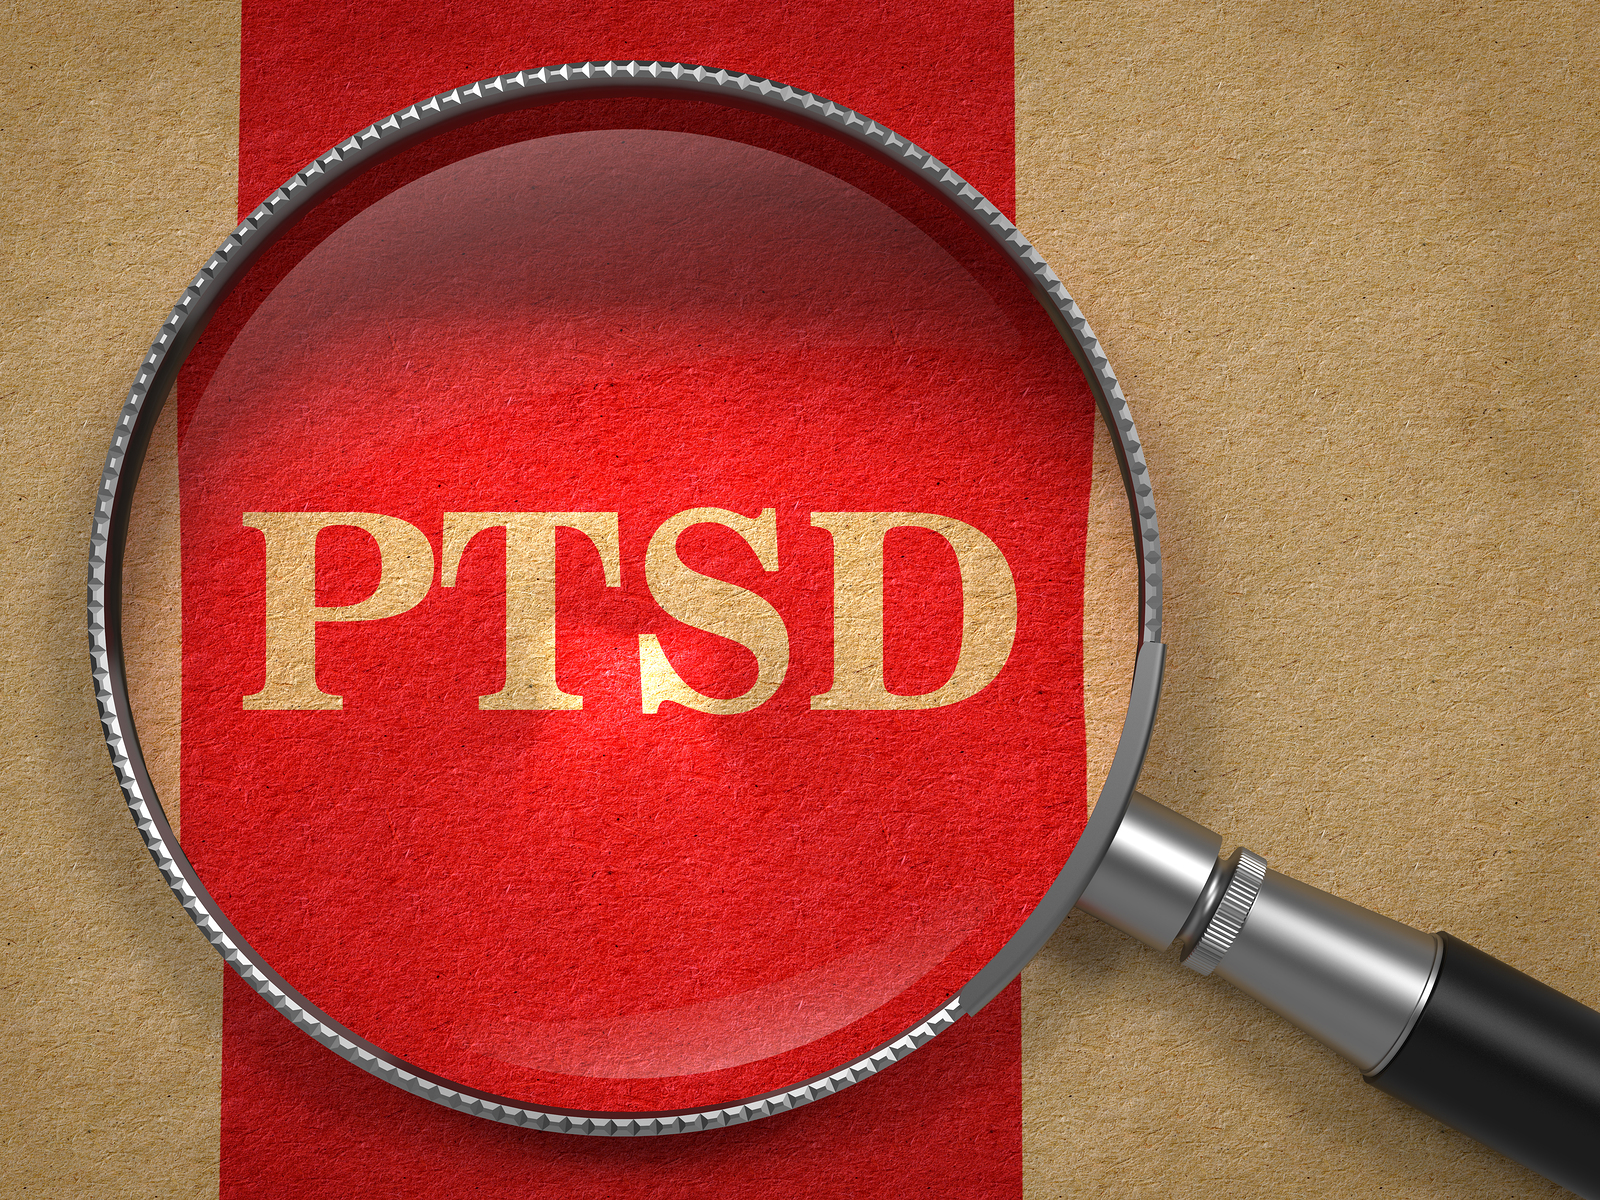 Learning About and Treating PTSD